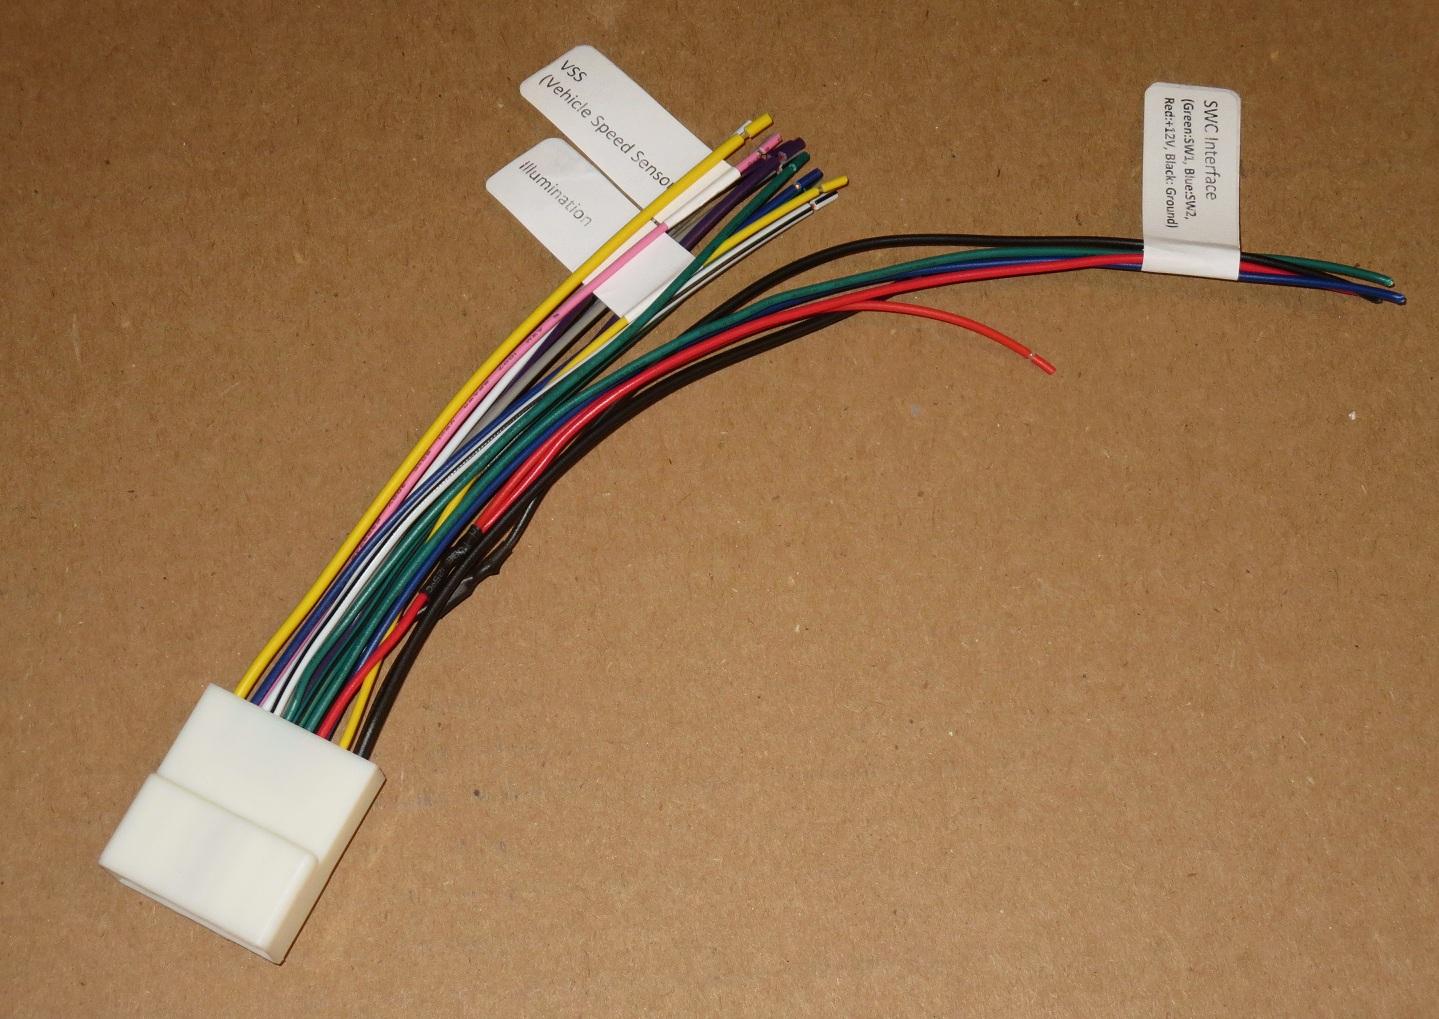 Connect The Power Supply Ground Wire And The 3525 Blue Wire To The